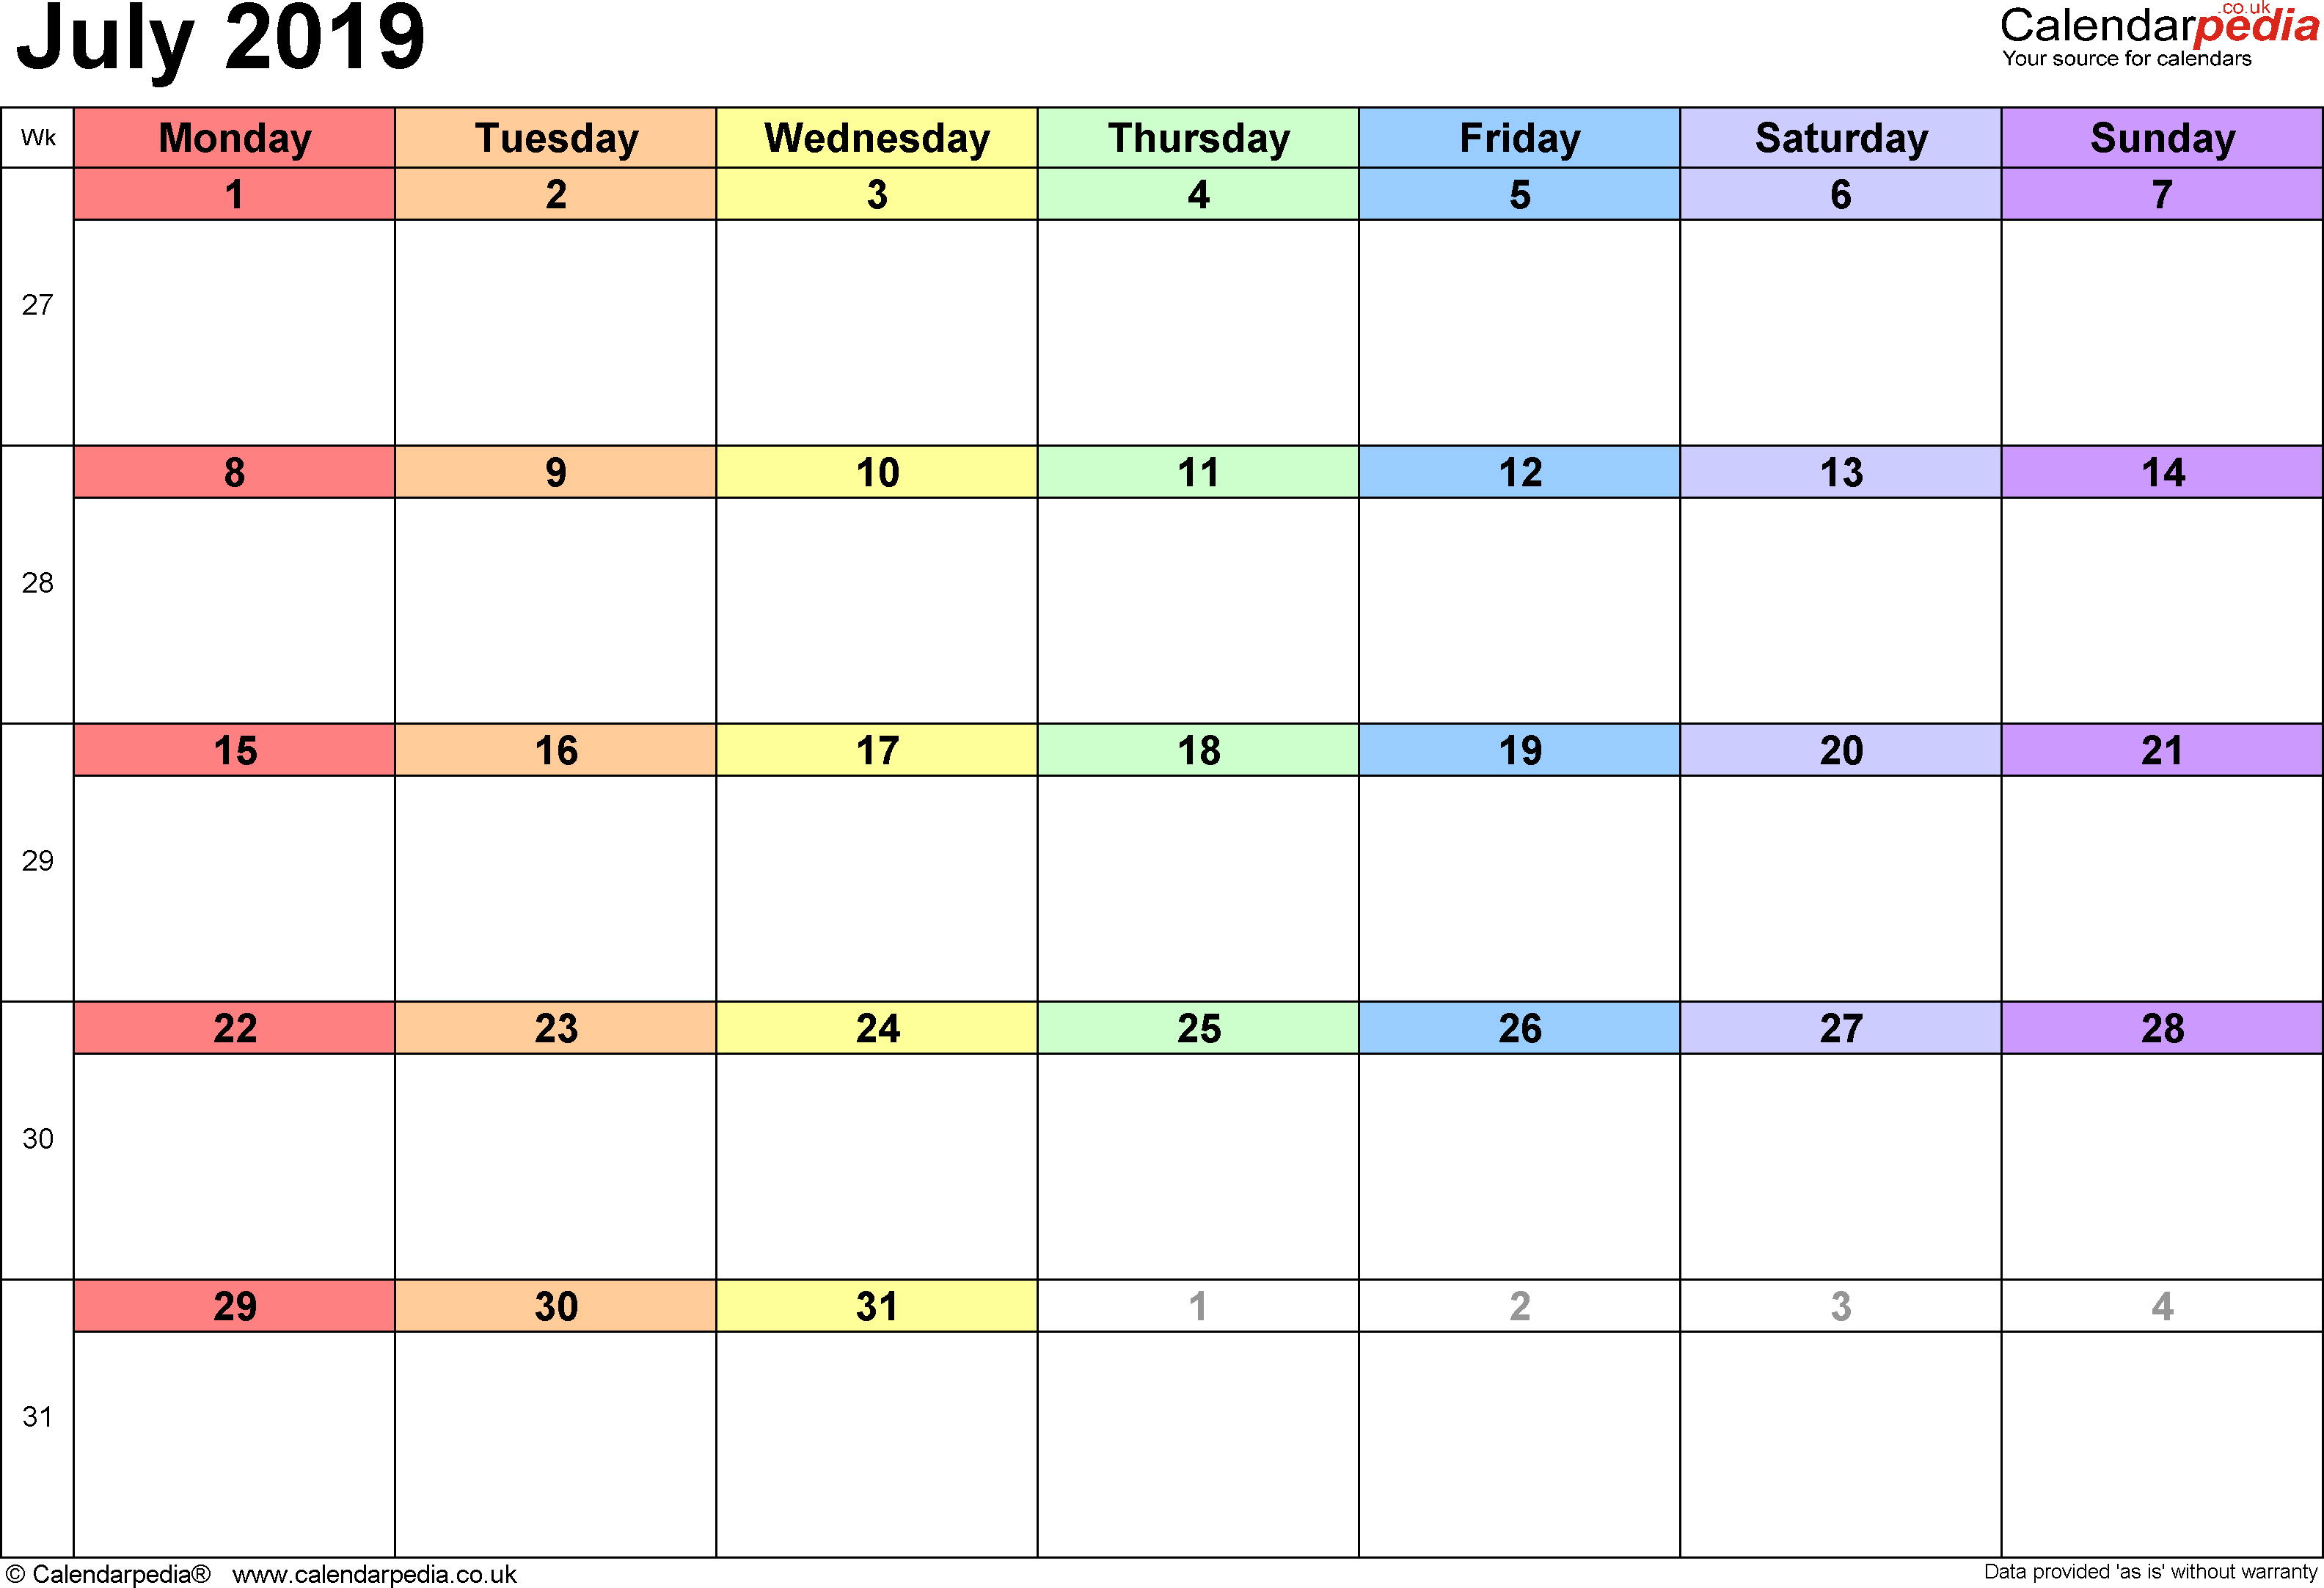 Calendar July 2019, landscape orientation, 1 page, with UK bank holidays and week numbers